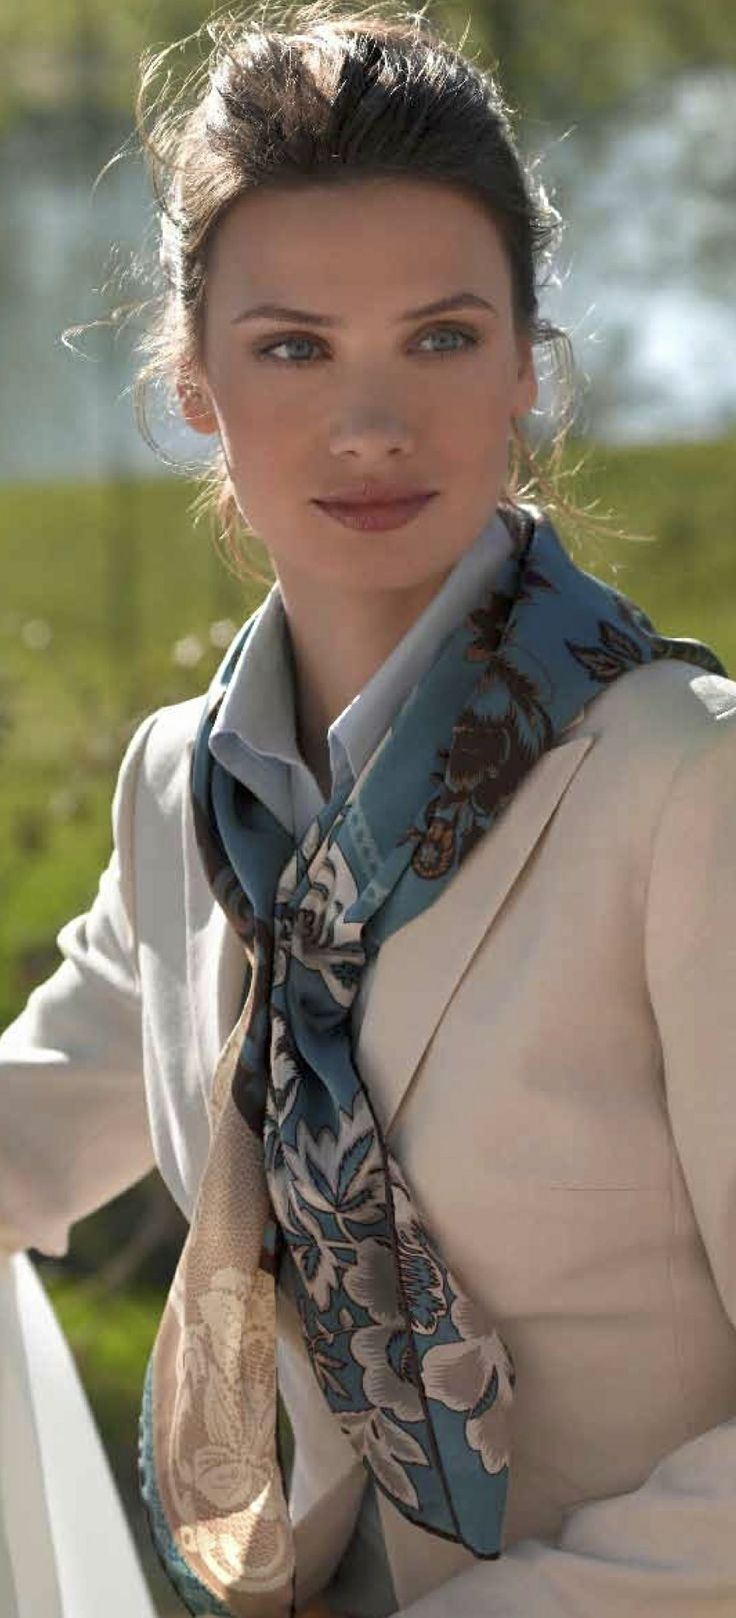 Love how she is wearing this scarf.